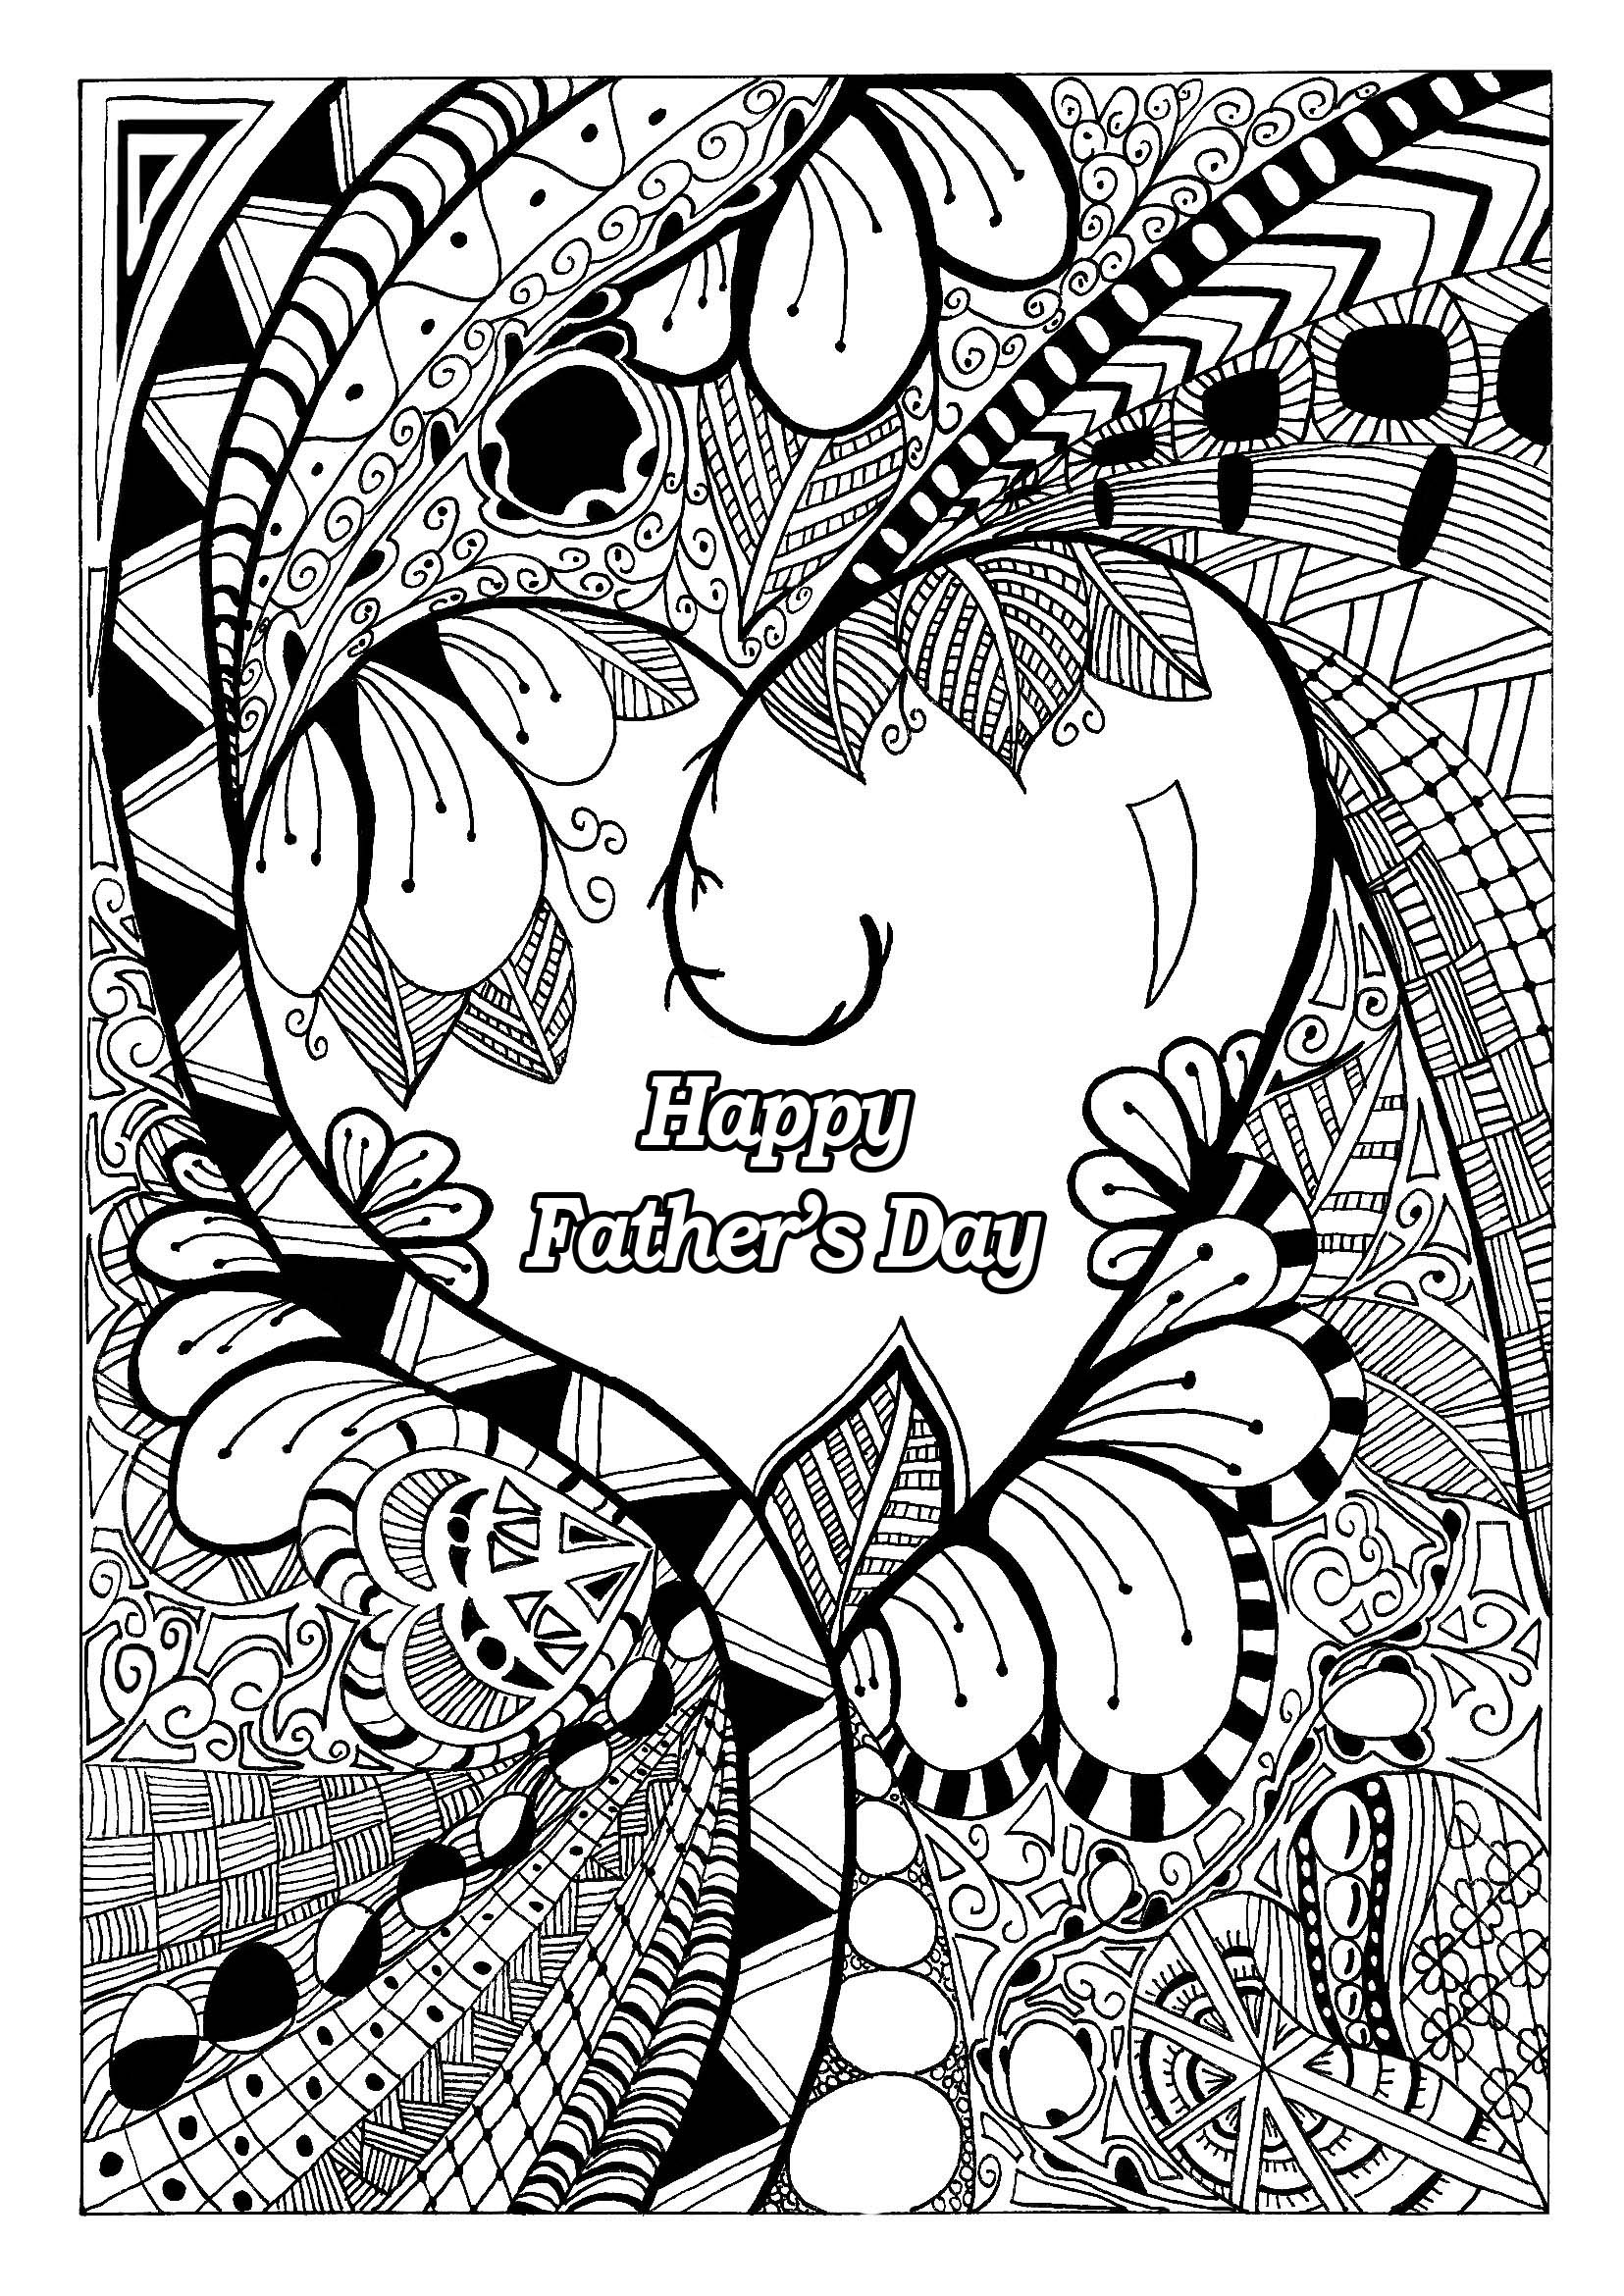 Coloring Pages For Fathers Day Free Coloring Pages Download | Xsibe ...